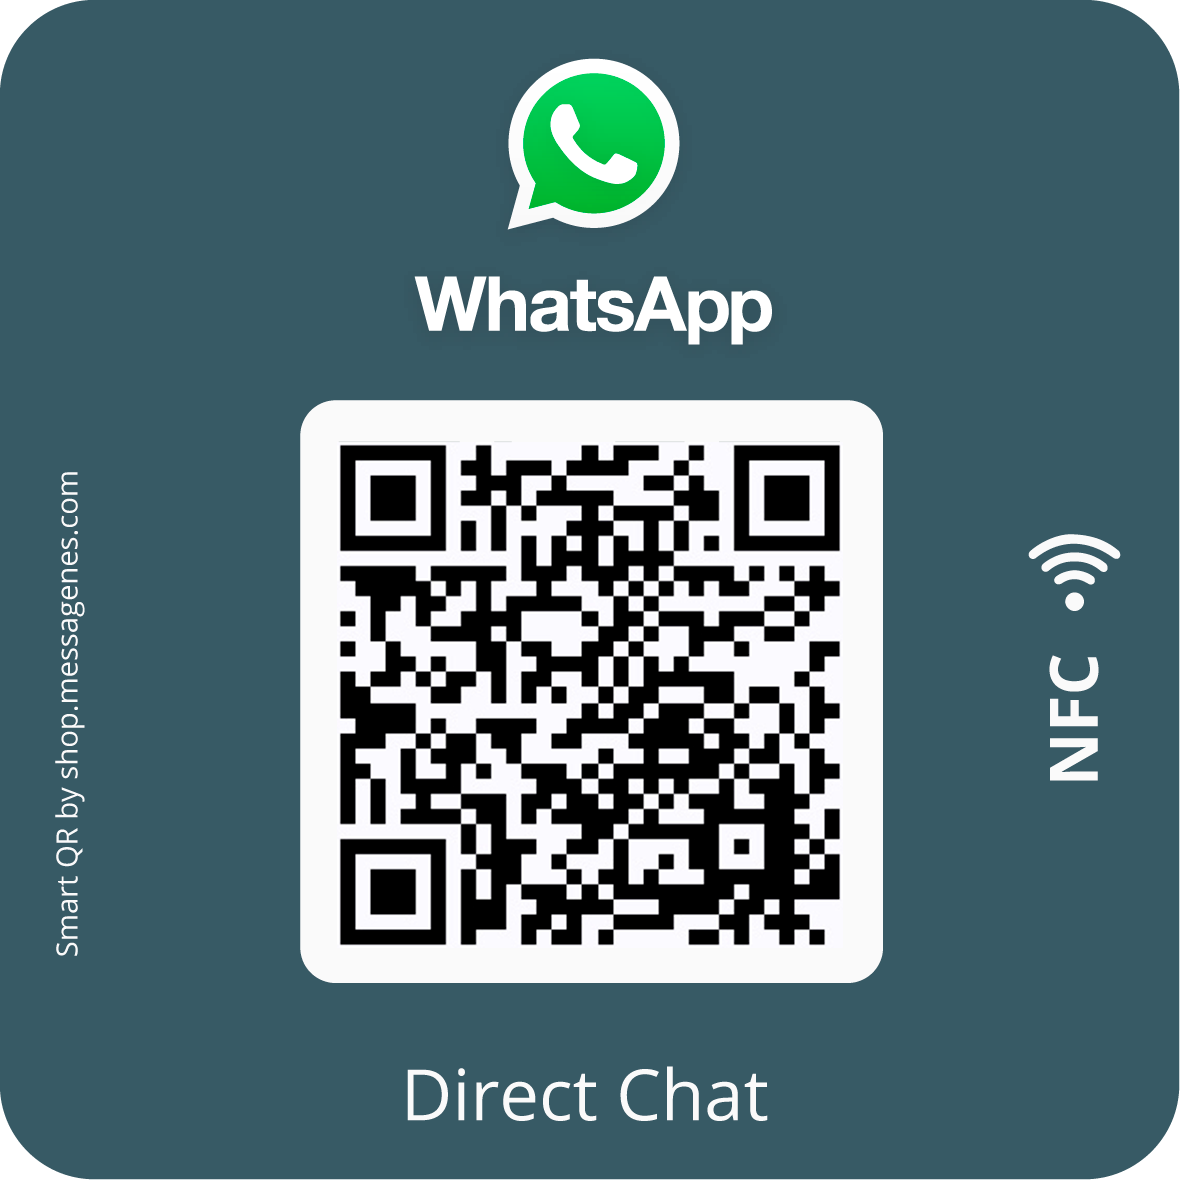 Whatsapp Direct Message Sticker with QR & NFC - square gray version